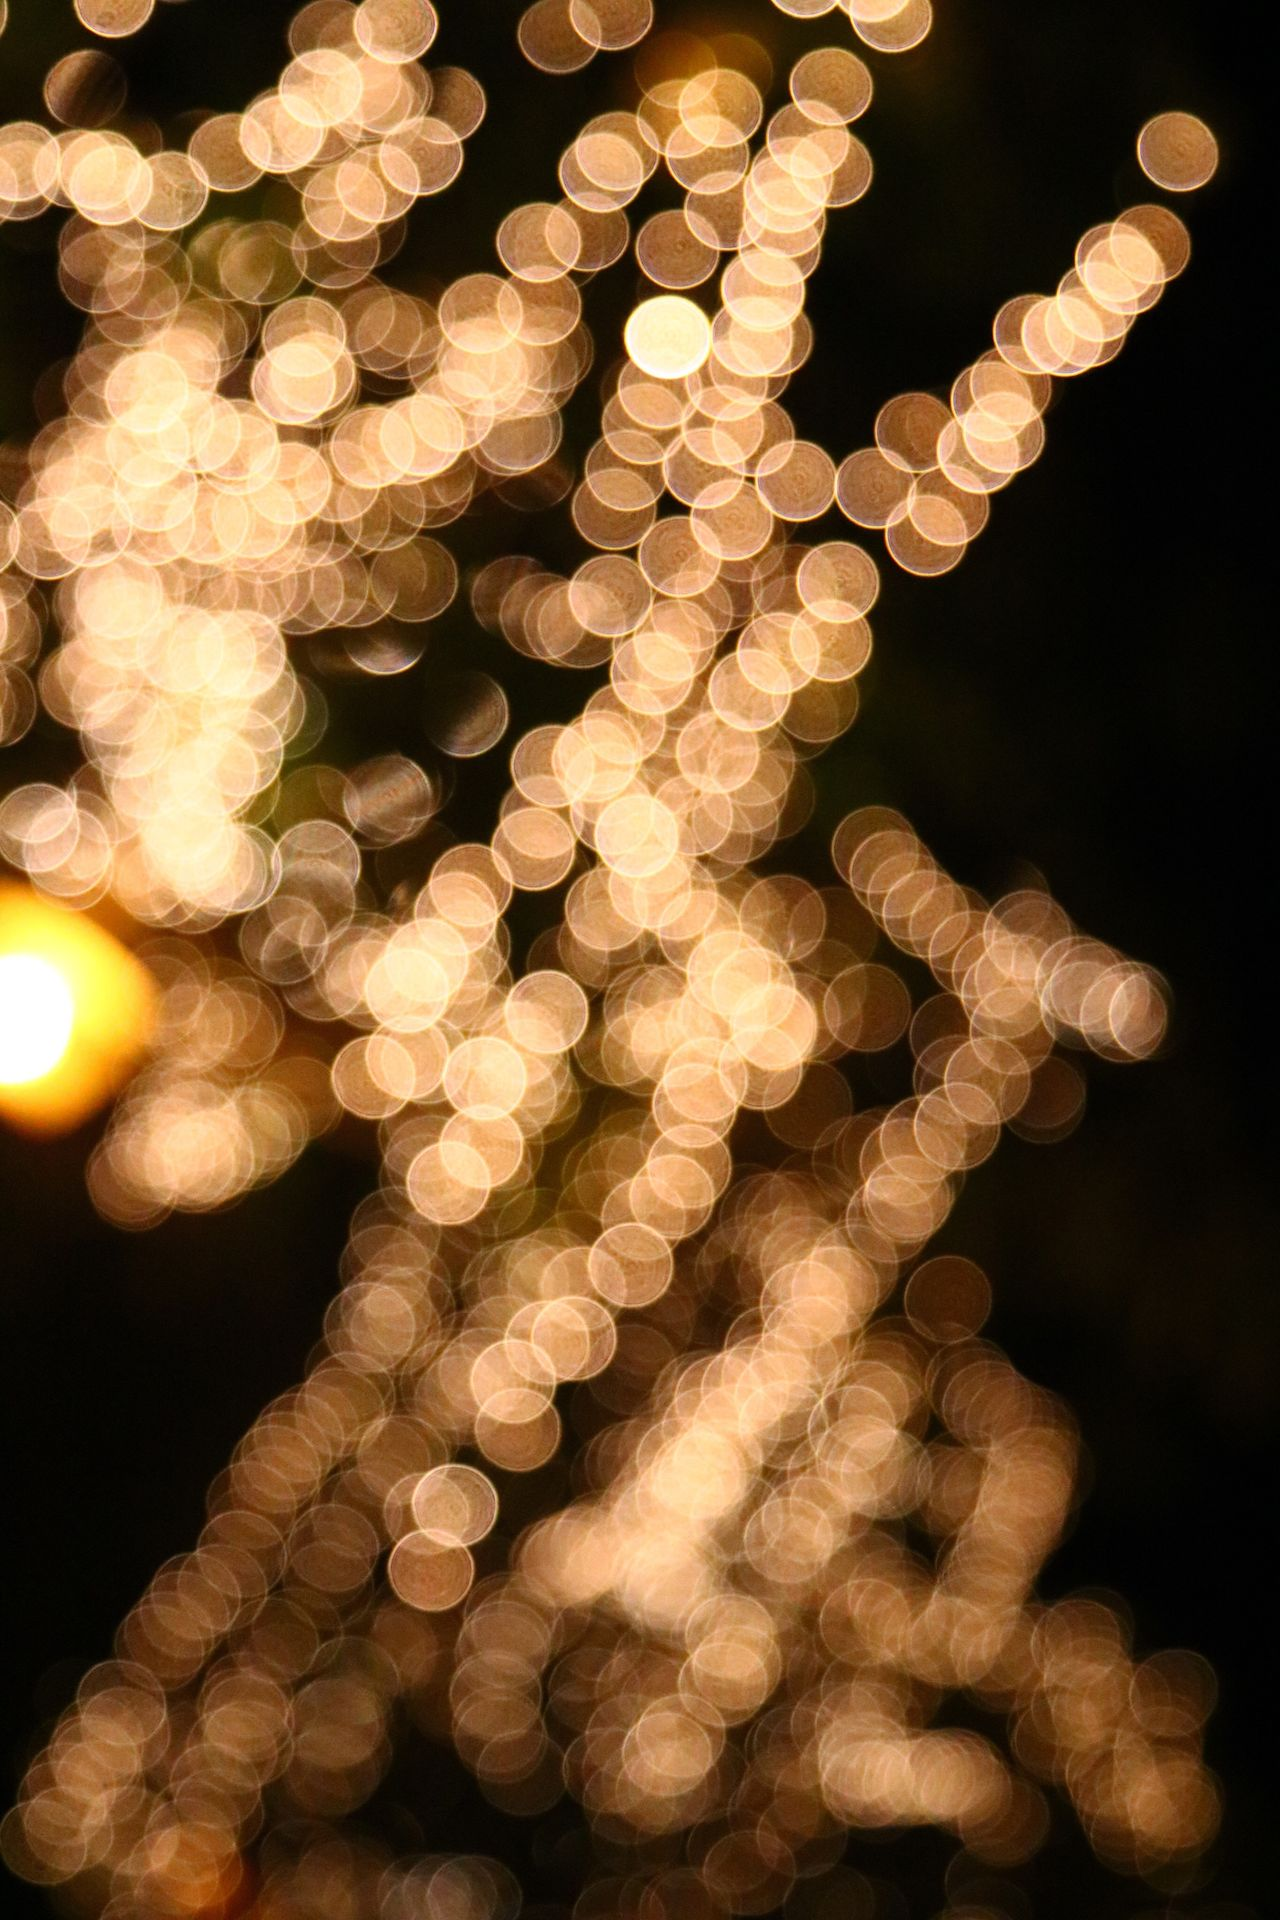 Blurredbackground Blurred Lights Blurred Blurred Background Illuminated Celebration Christmas Decoration Christmas Christmas Tree Night Christmas Lights Hanging Tradition Defocused No People Christmas Ornament Burning Representing Close-up Advent Outdoors Blurred Motion